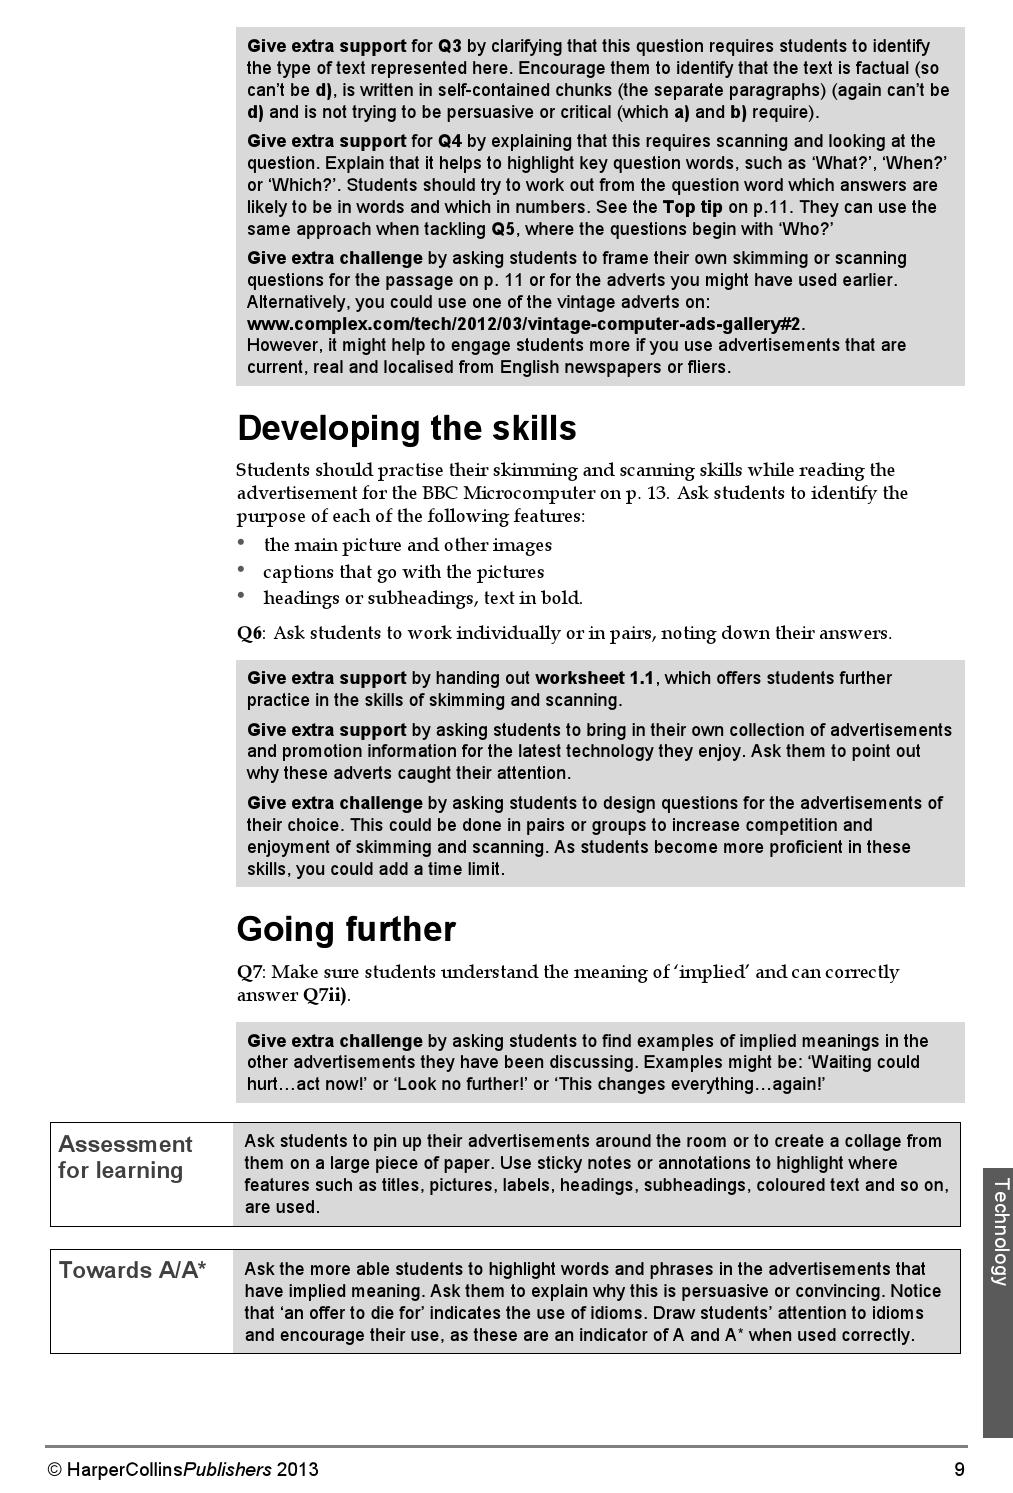 worksheet Identifying Types Of Paragraphs Worksheets workbooks identifying types of paragraphs worksheets free cambridge igcse english as a second language teacher guide by